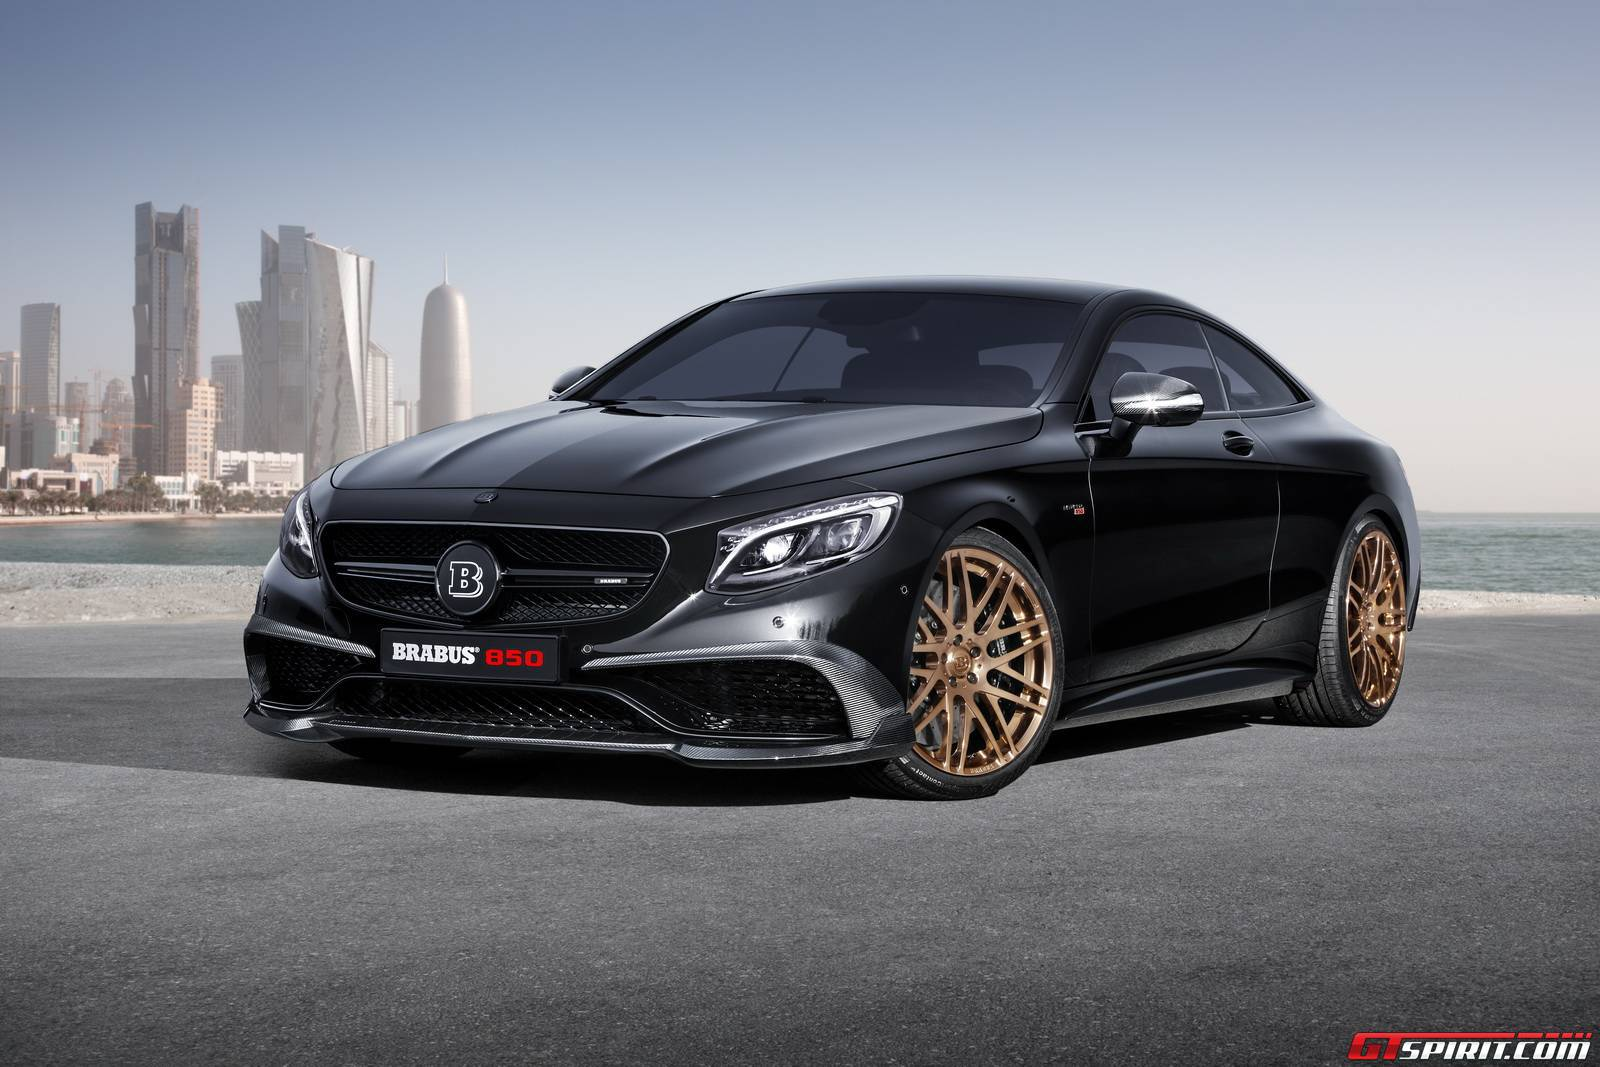 Exceptional Brabus 850 Mercedes Benz S63 AMG Coupe